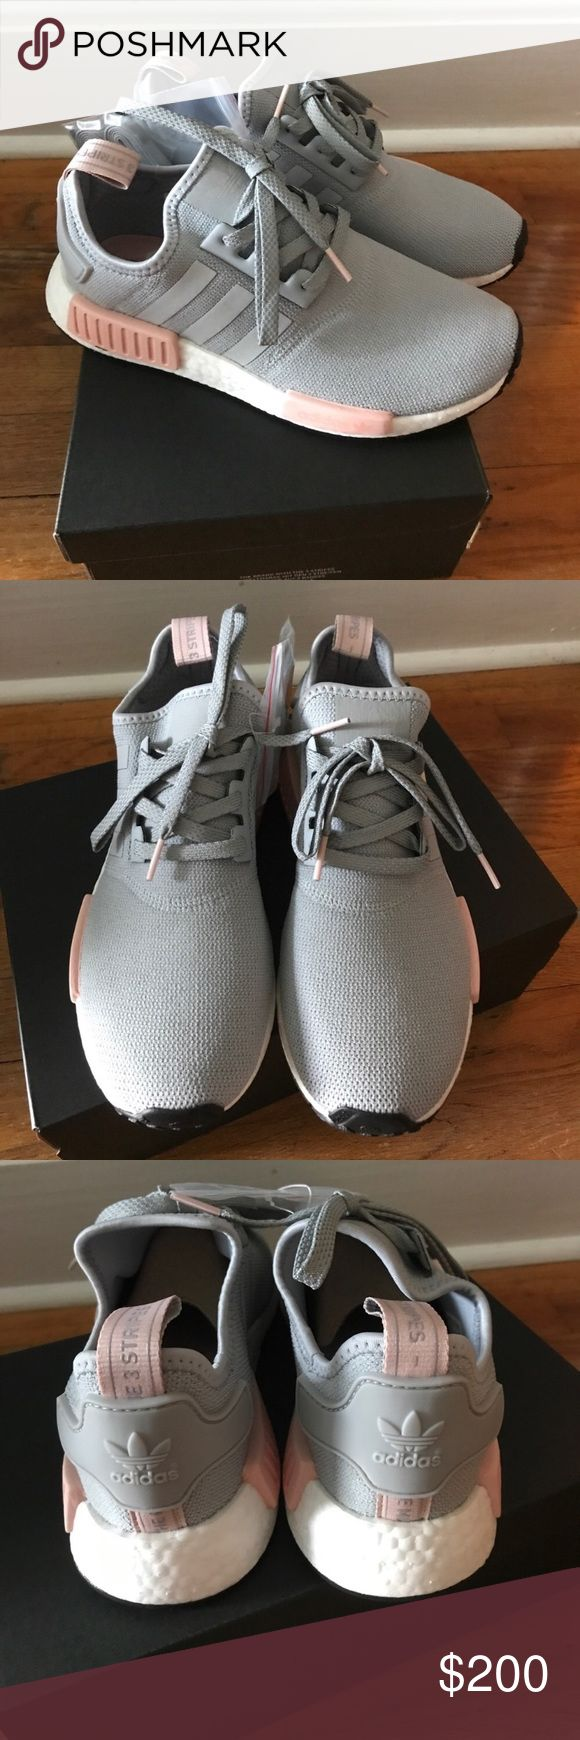 Adidas NMD R1 Brand new with box. Authentic Adidas NMD R1 in gray. Never worn. No Trades. Price is firm. Adidas Shoes Athletic Shoes